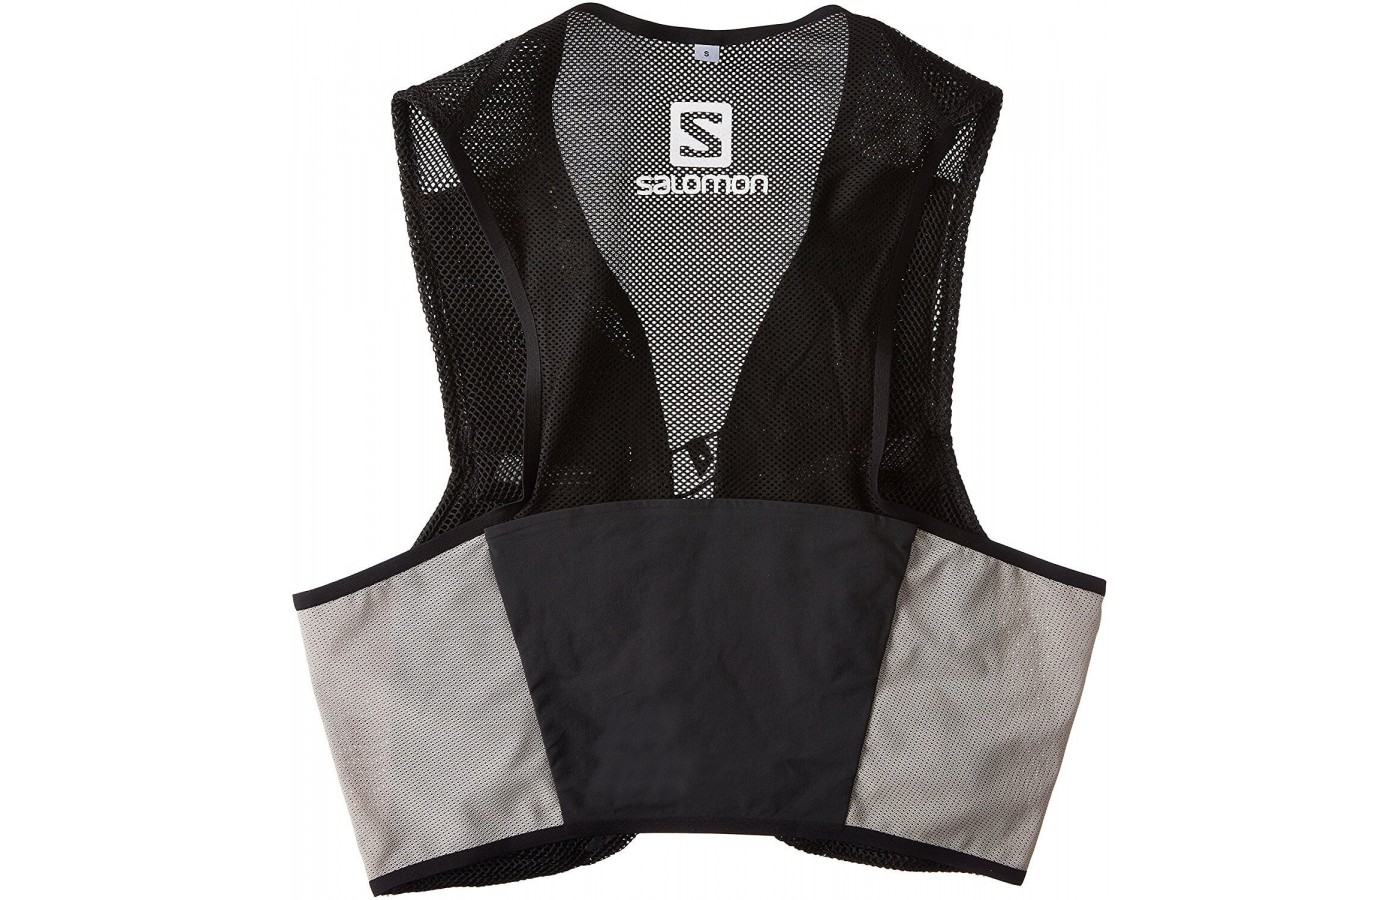 The vest's mesh promotes breathability and comfort, its construction lends itself to a stable fit, and the rear kangaroo pouch offers an extra storage option